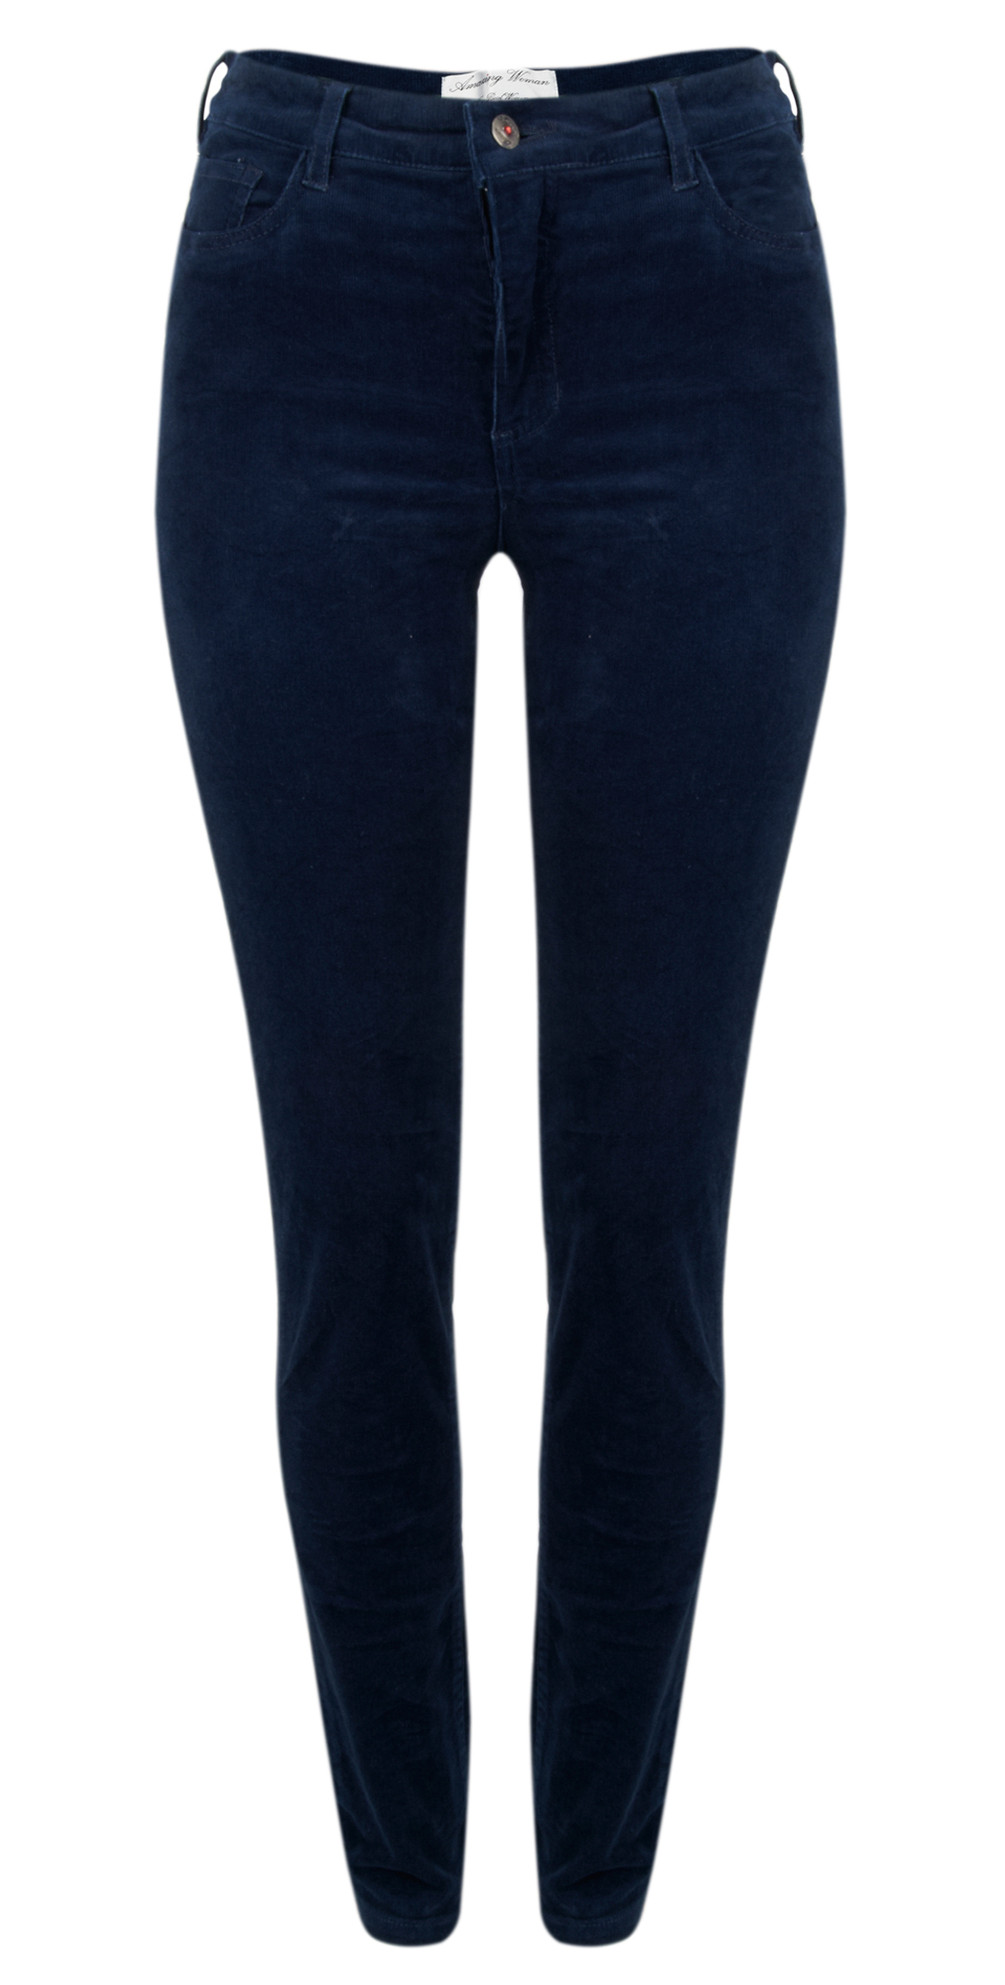 Amazing Woman Jeans are, in our mind, a collection of jeans with the most wonderful fit for shapely, feminine figures. The expertly made collection offers an extremely soft jean with the most wonderful fit - high waisted and long legged to give a sleek and smooth look.